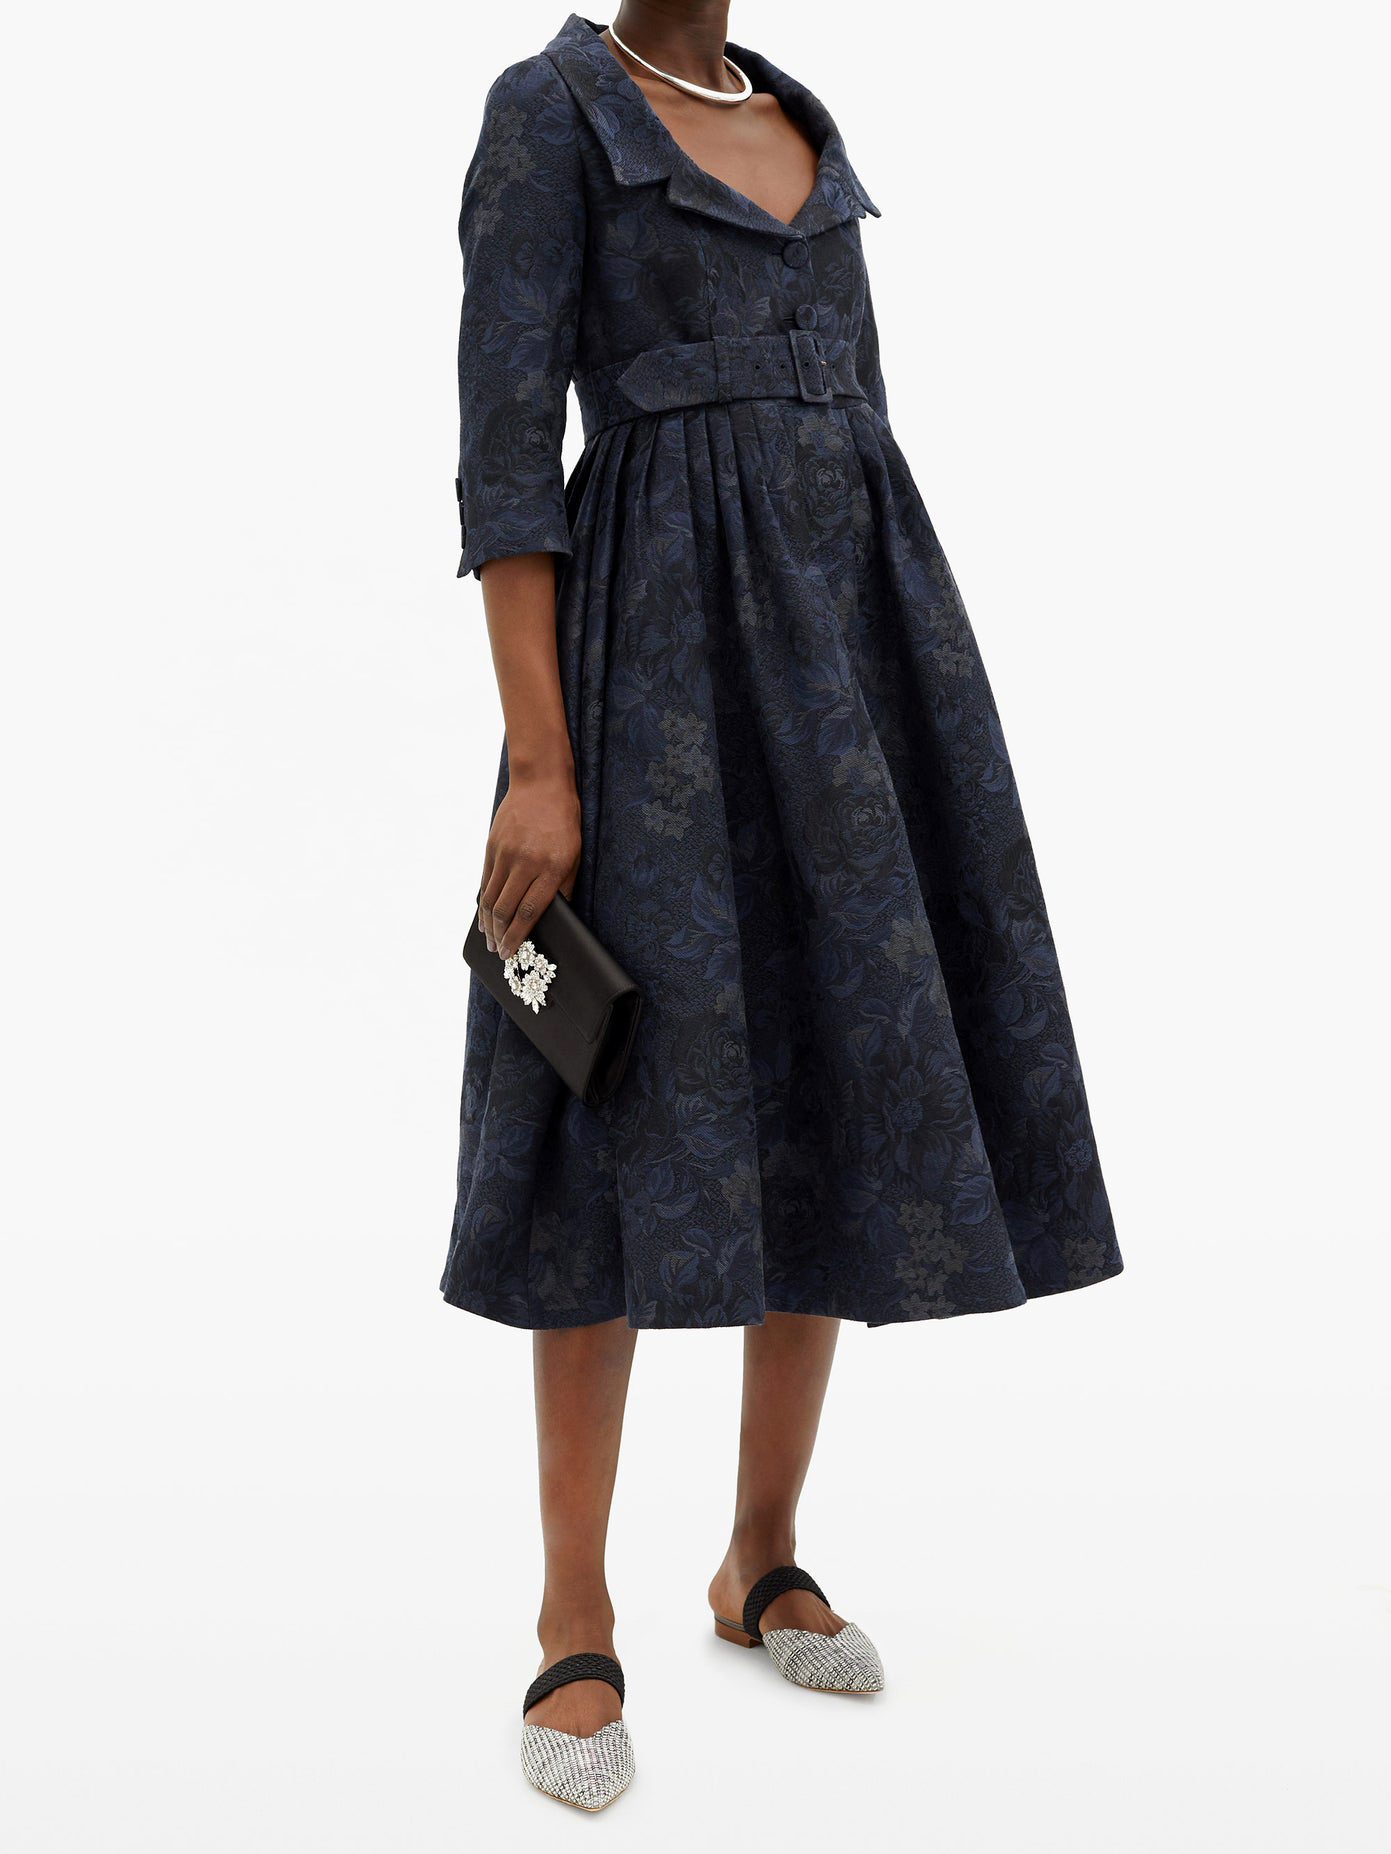 erdem meril cotton-blend floral jacquard midi dress